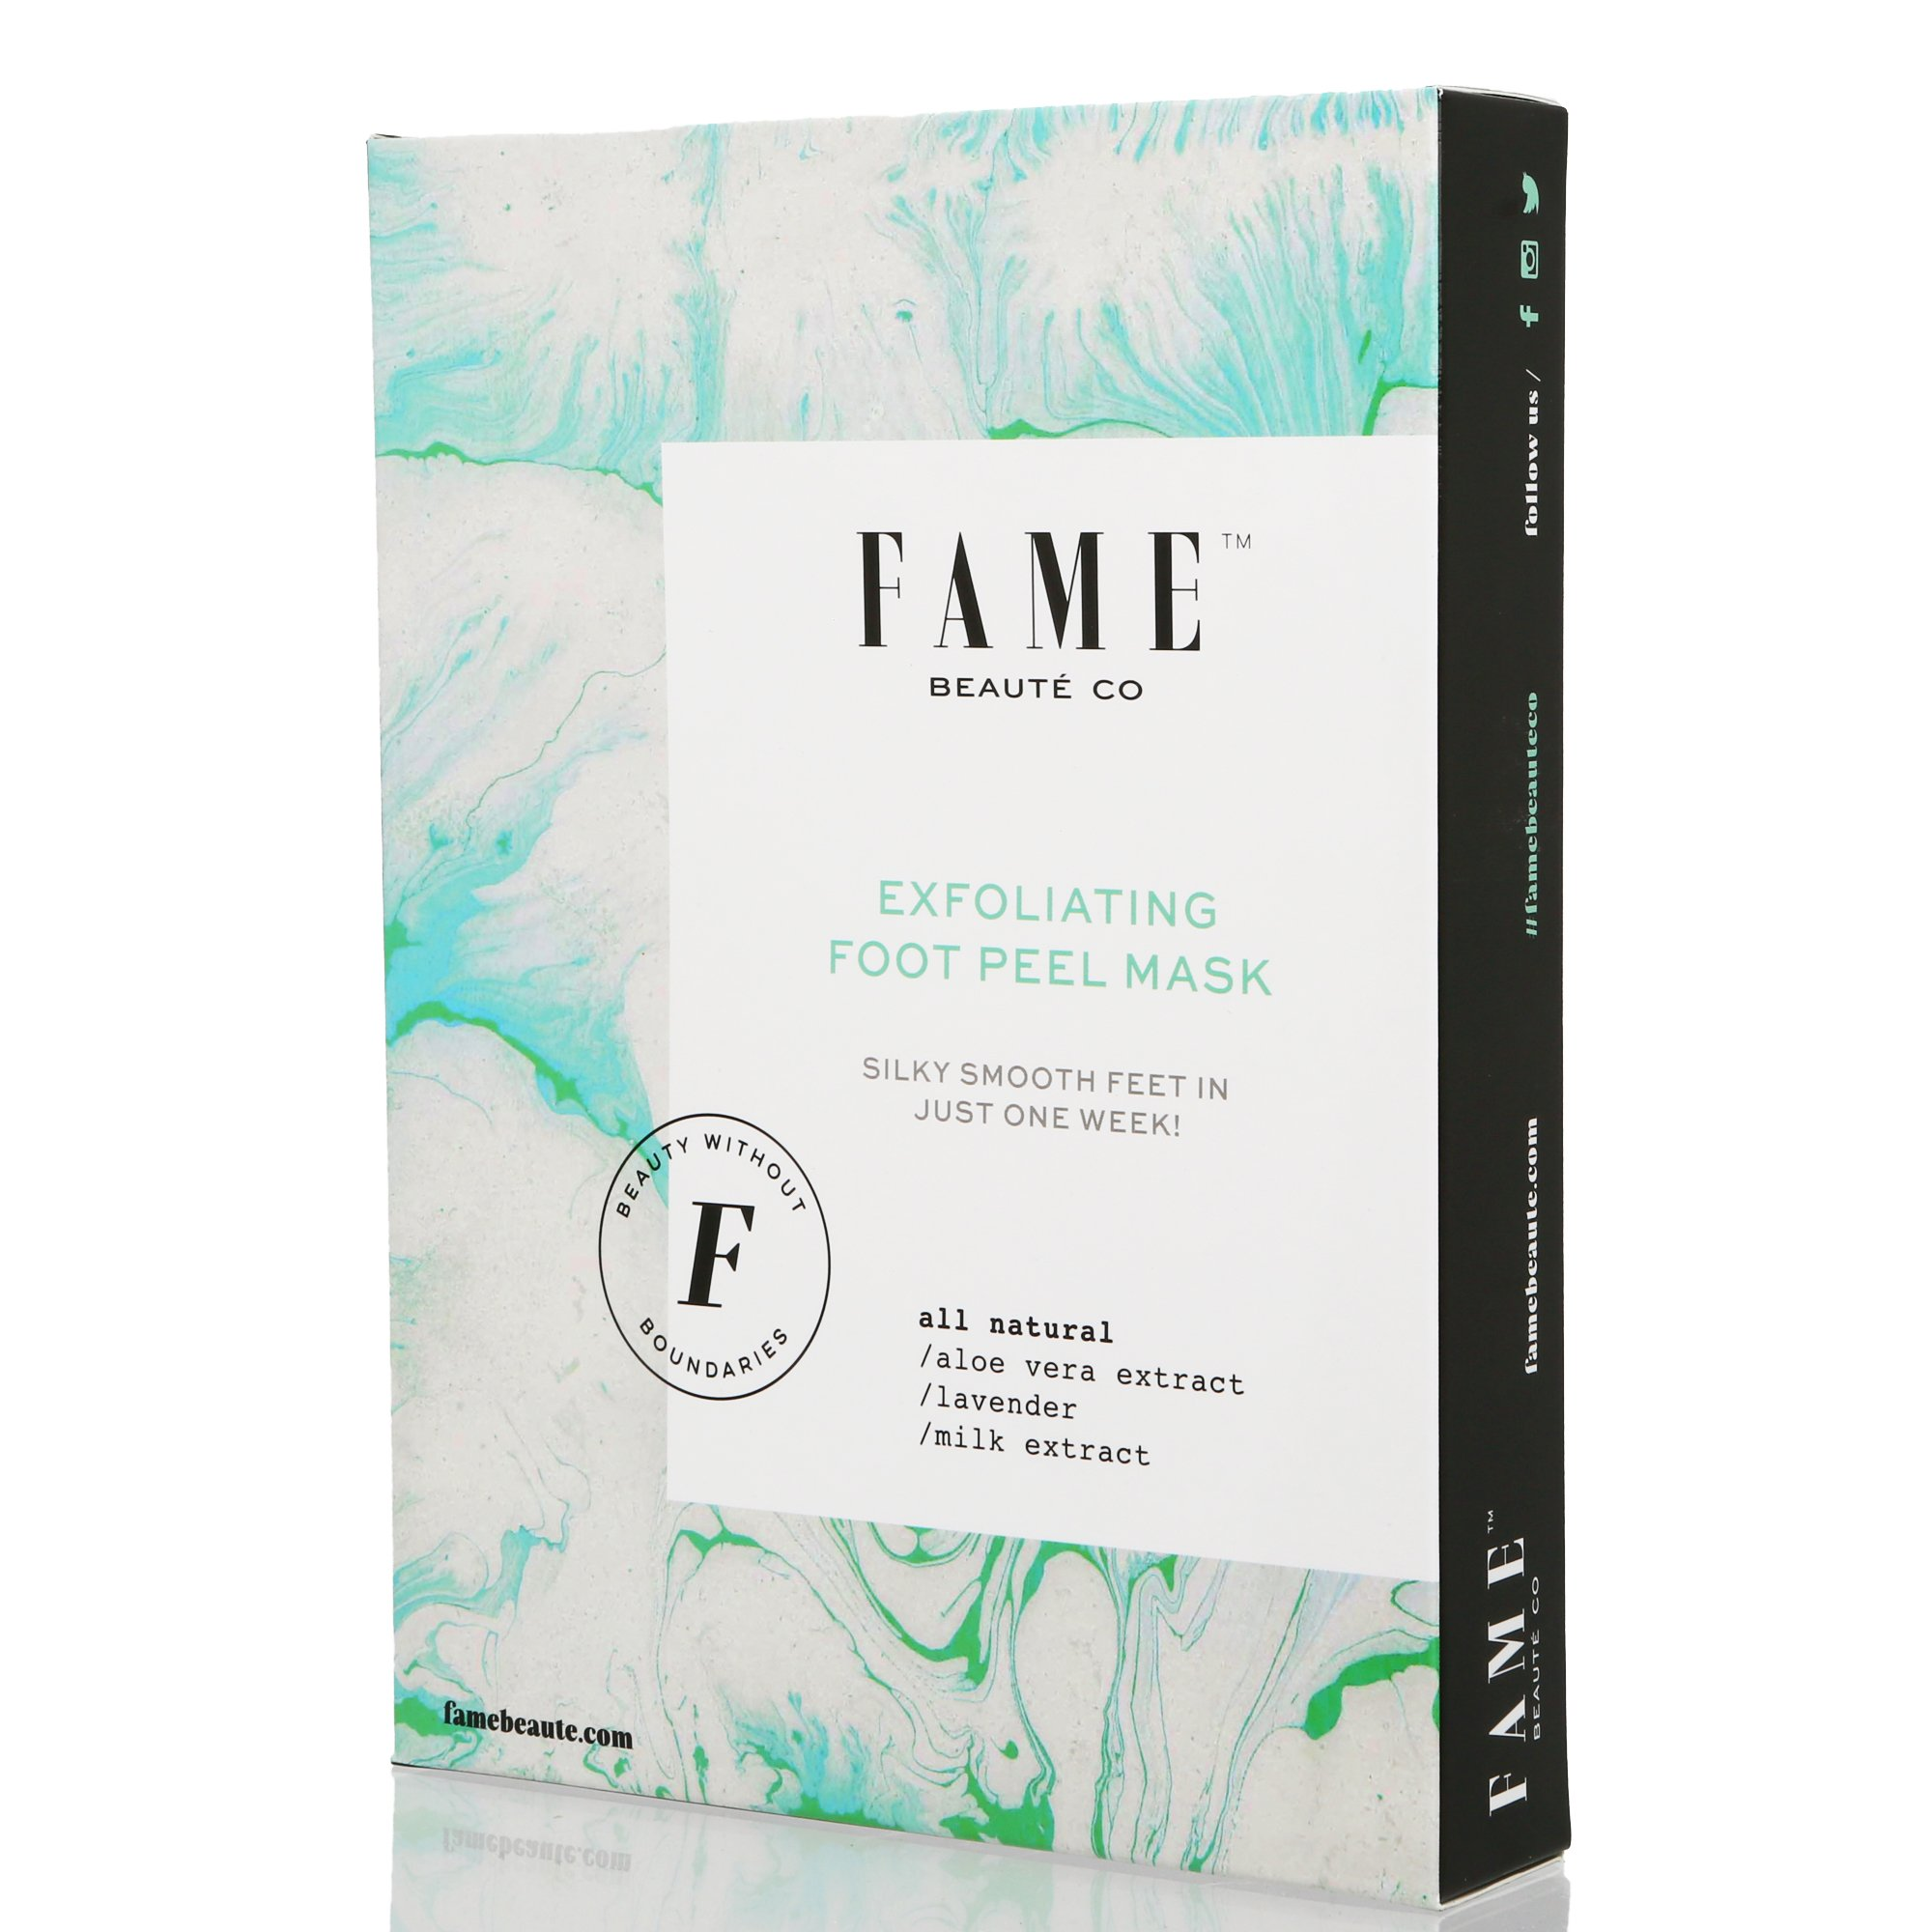 Foot Peel Mask by Fame Beauté Co - Foot Peeling Mask, Exfoliating Calluses and Dead Skin Remover, Repair Rough Heels, Get Soft Foot Fast Dry Skin Treatment, Lavender Scented